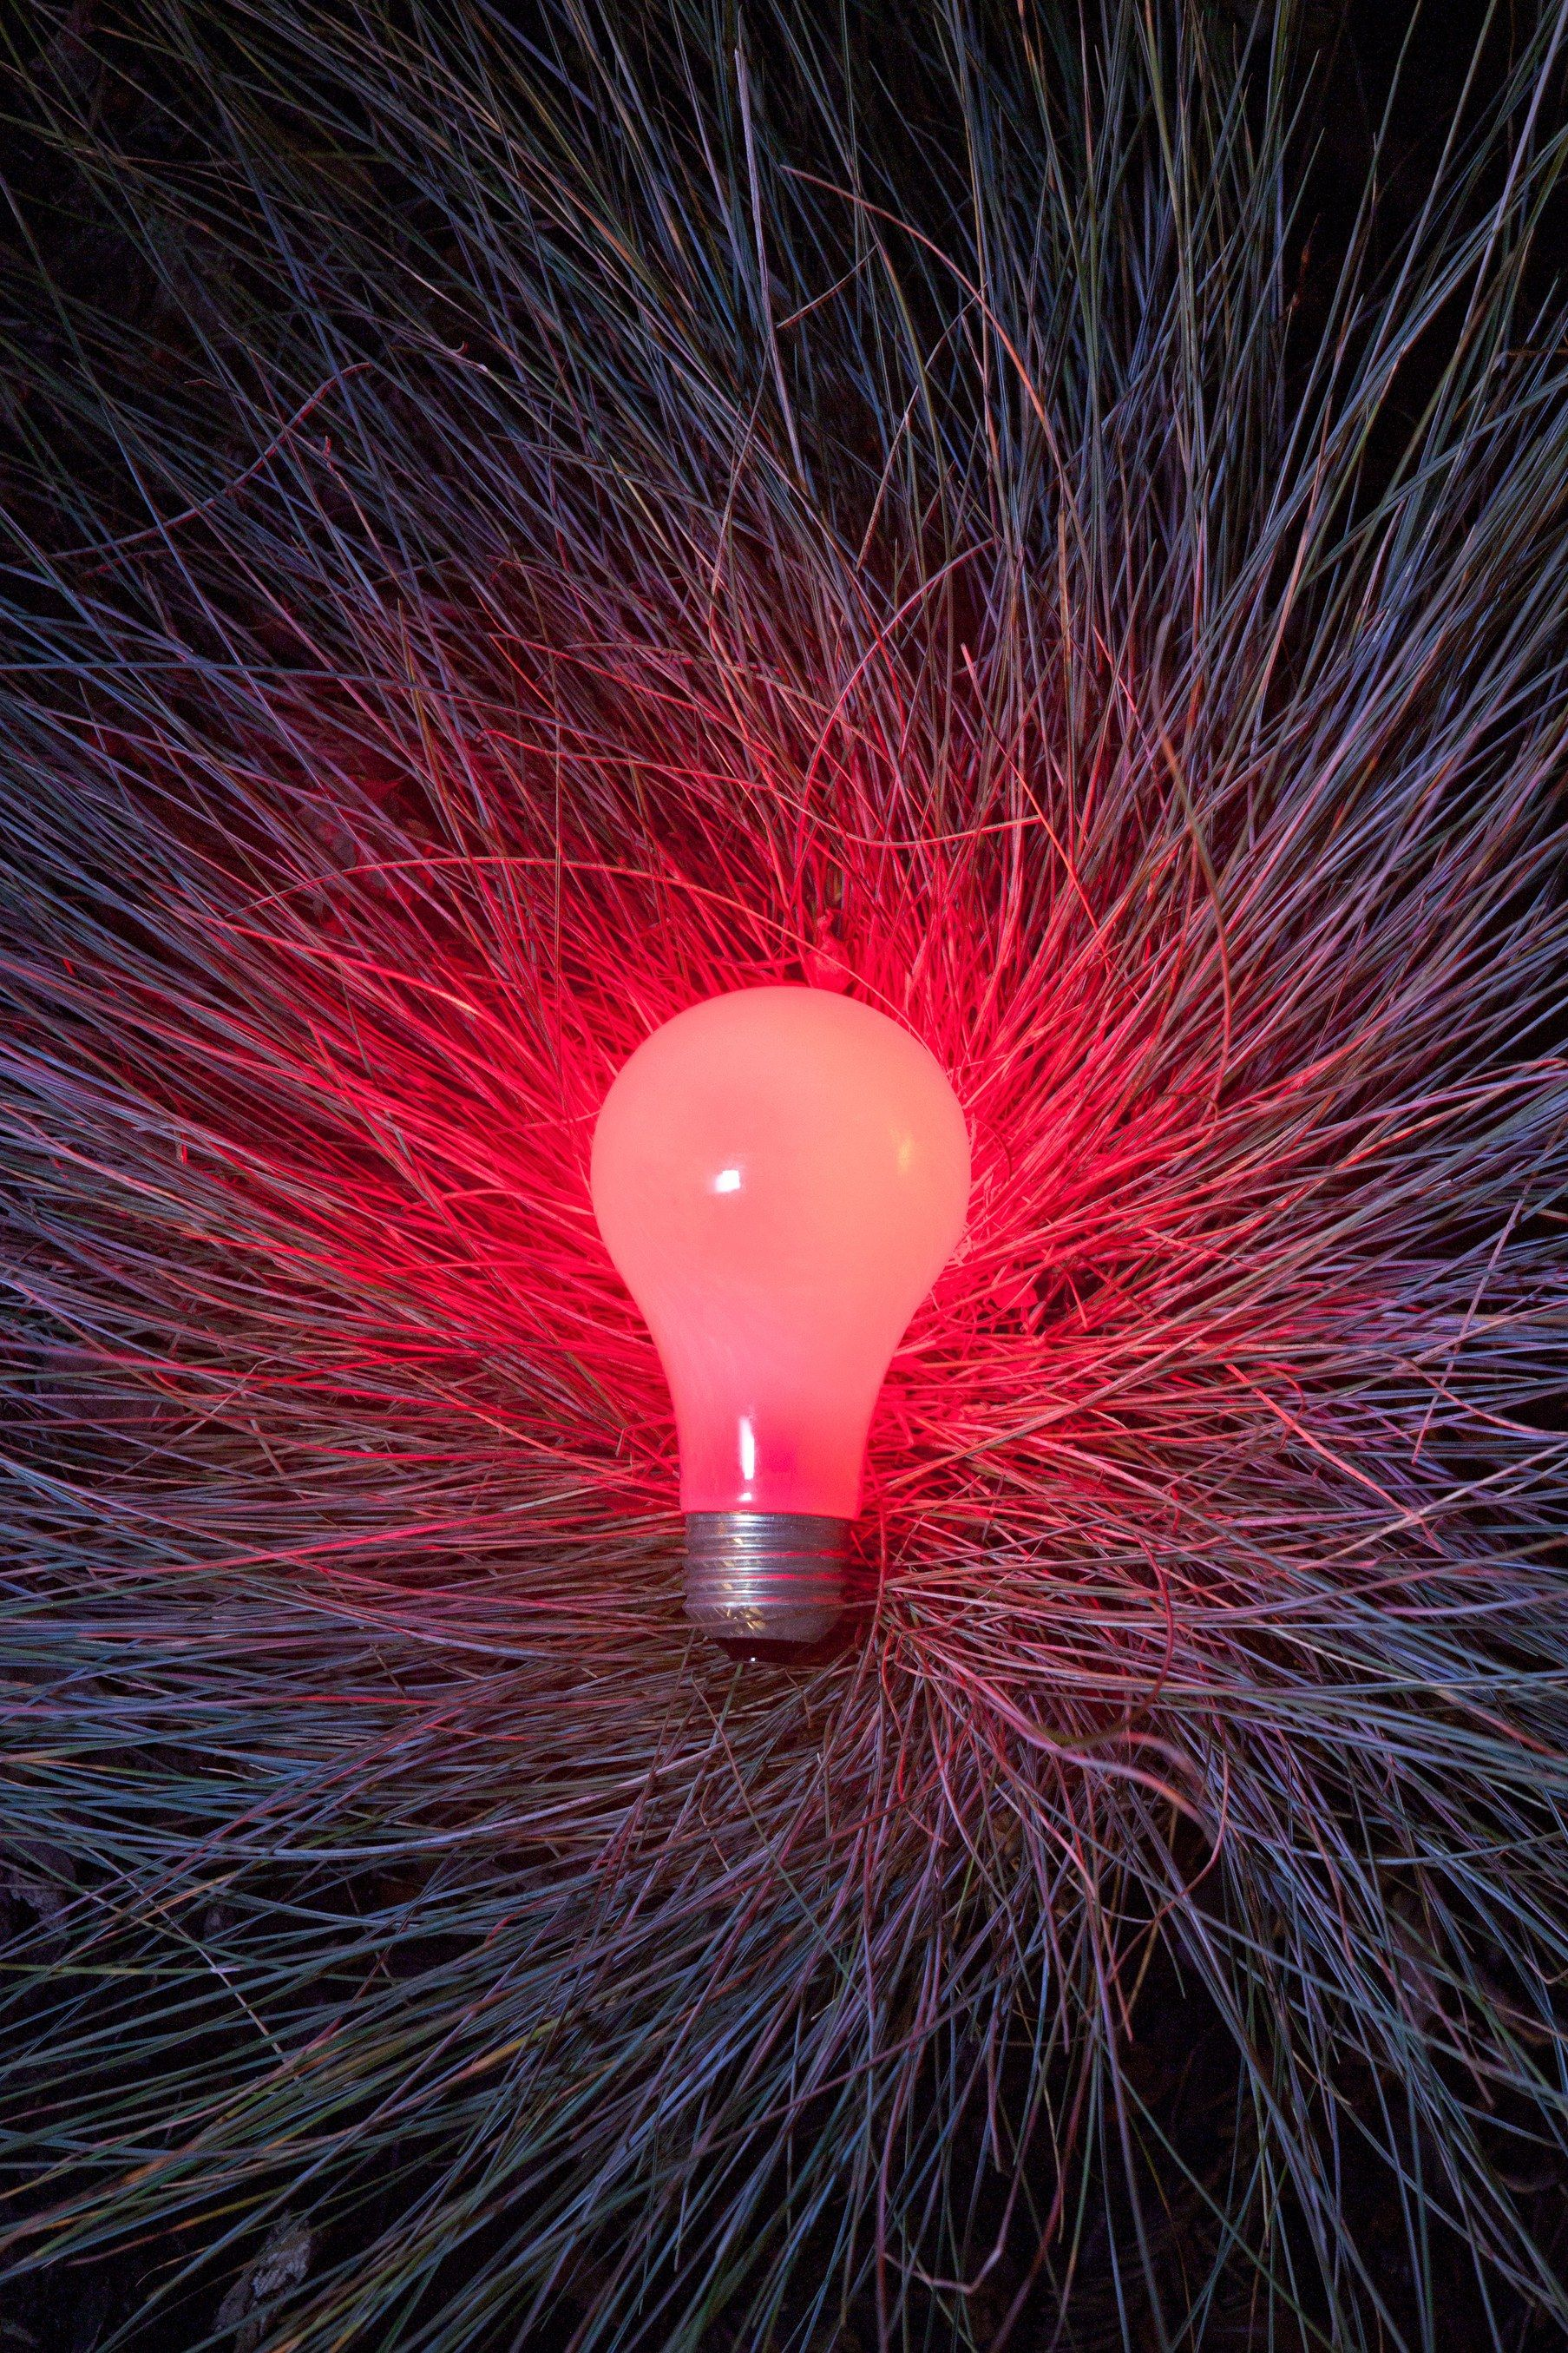 *You've never seen science expriments look quite like this*  Caption: A bulb lit by a single laser pointer beam, demonstrating the diffusion of light